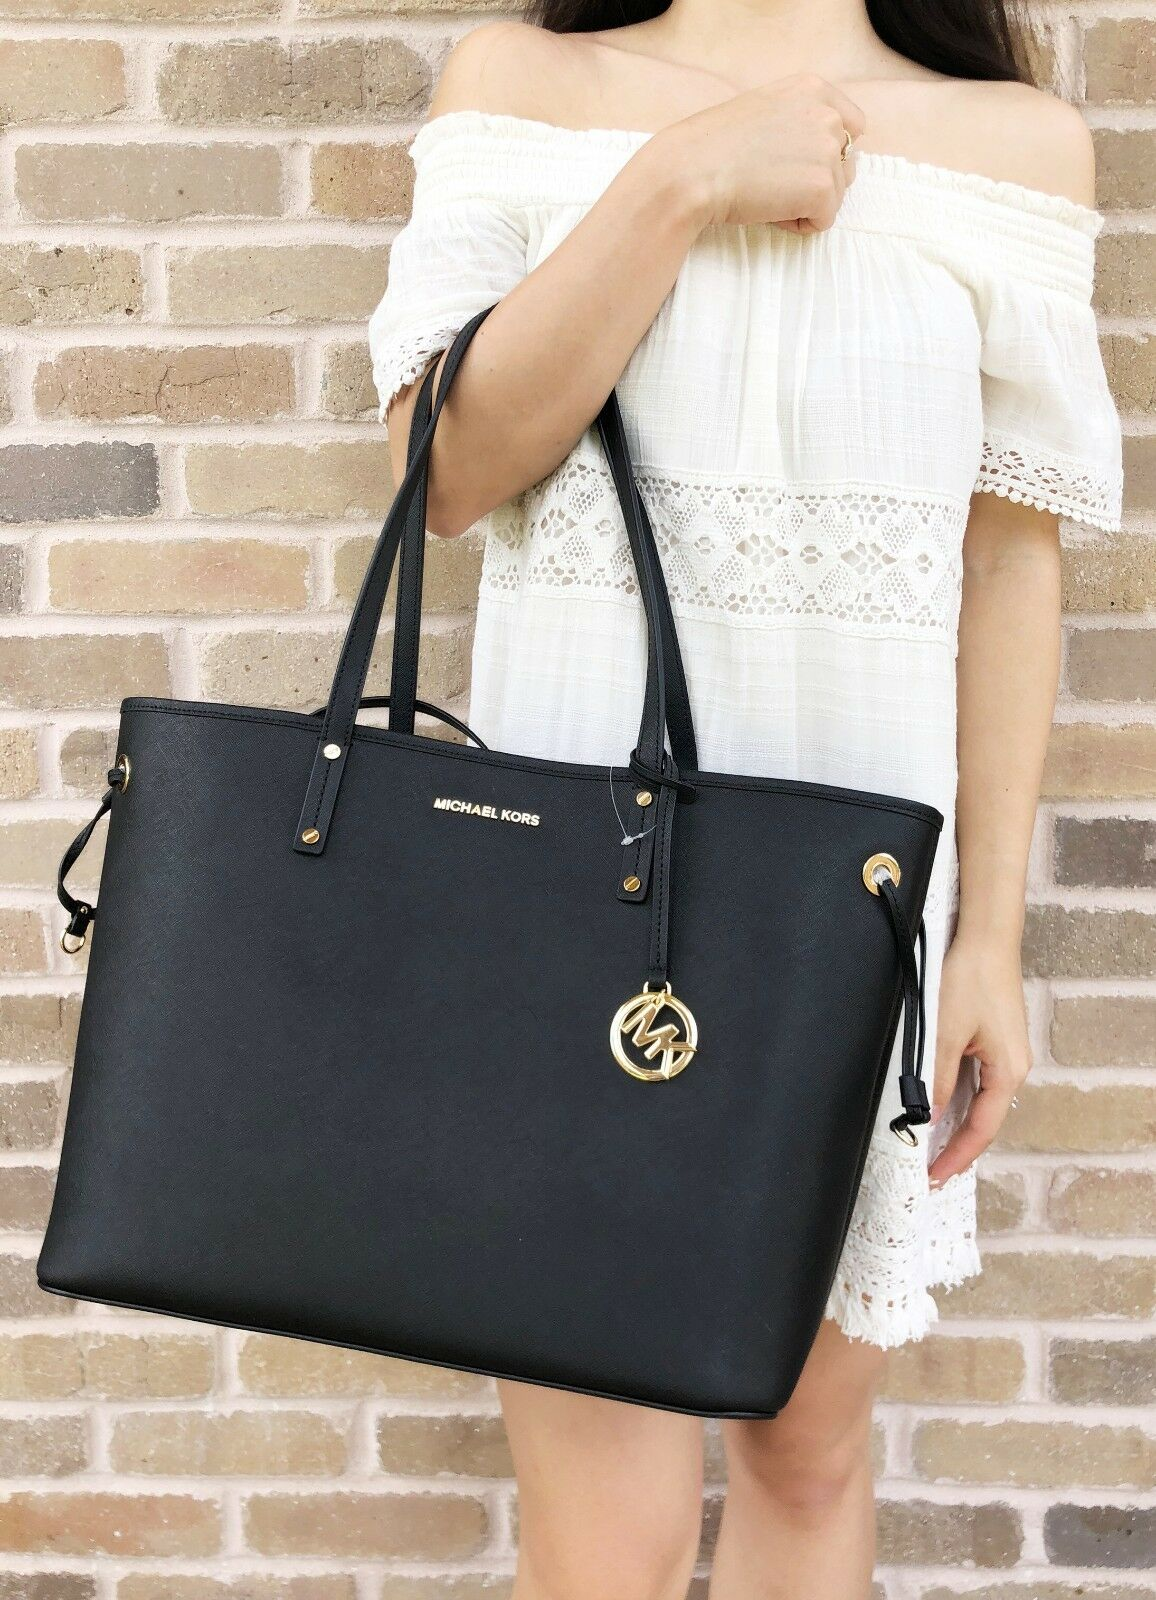 Michael Kors Jet Set Travel Large Drawstring Tote With Pouch BlackSolid